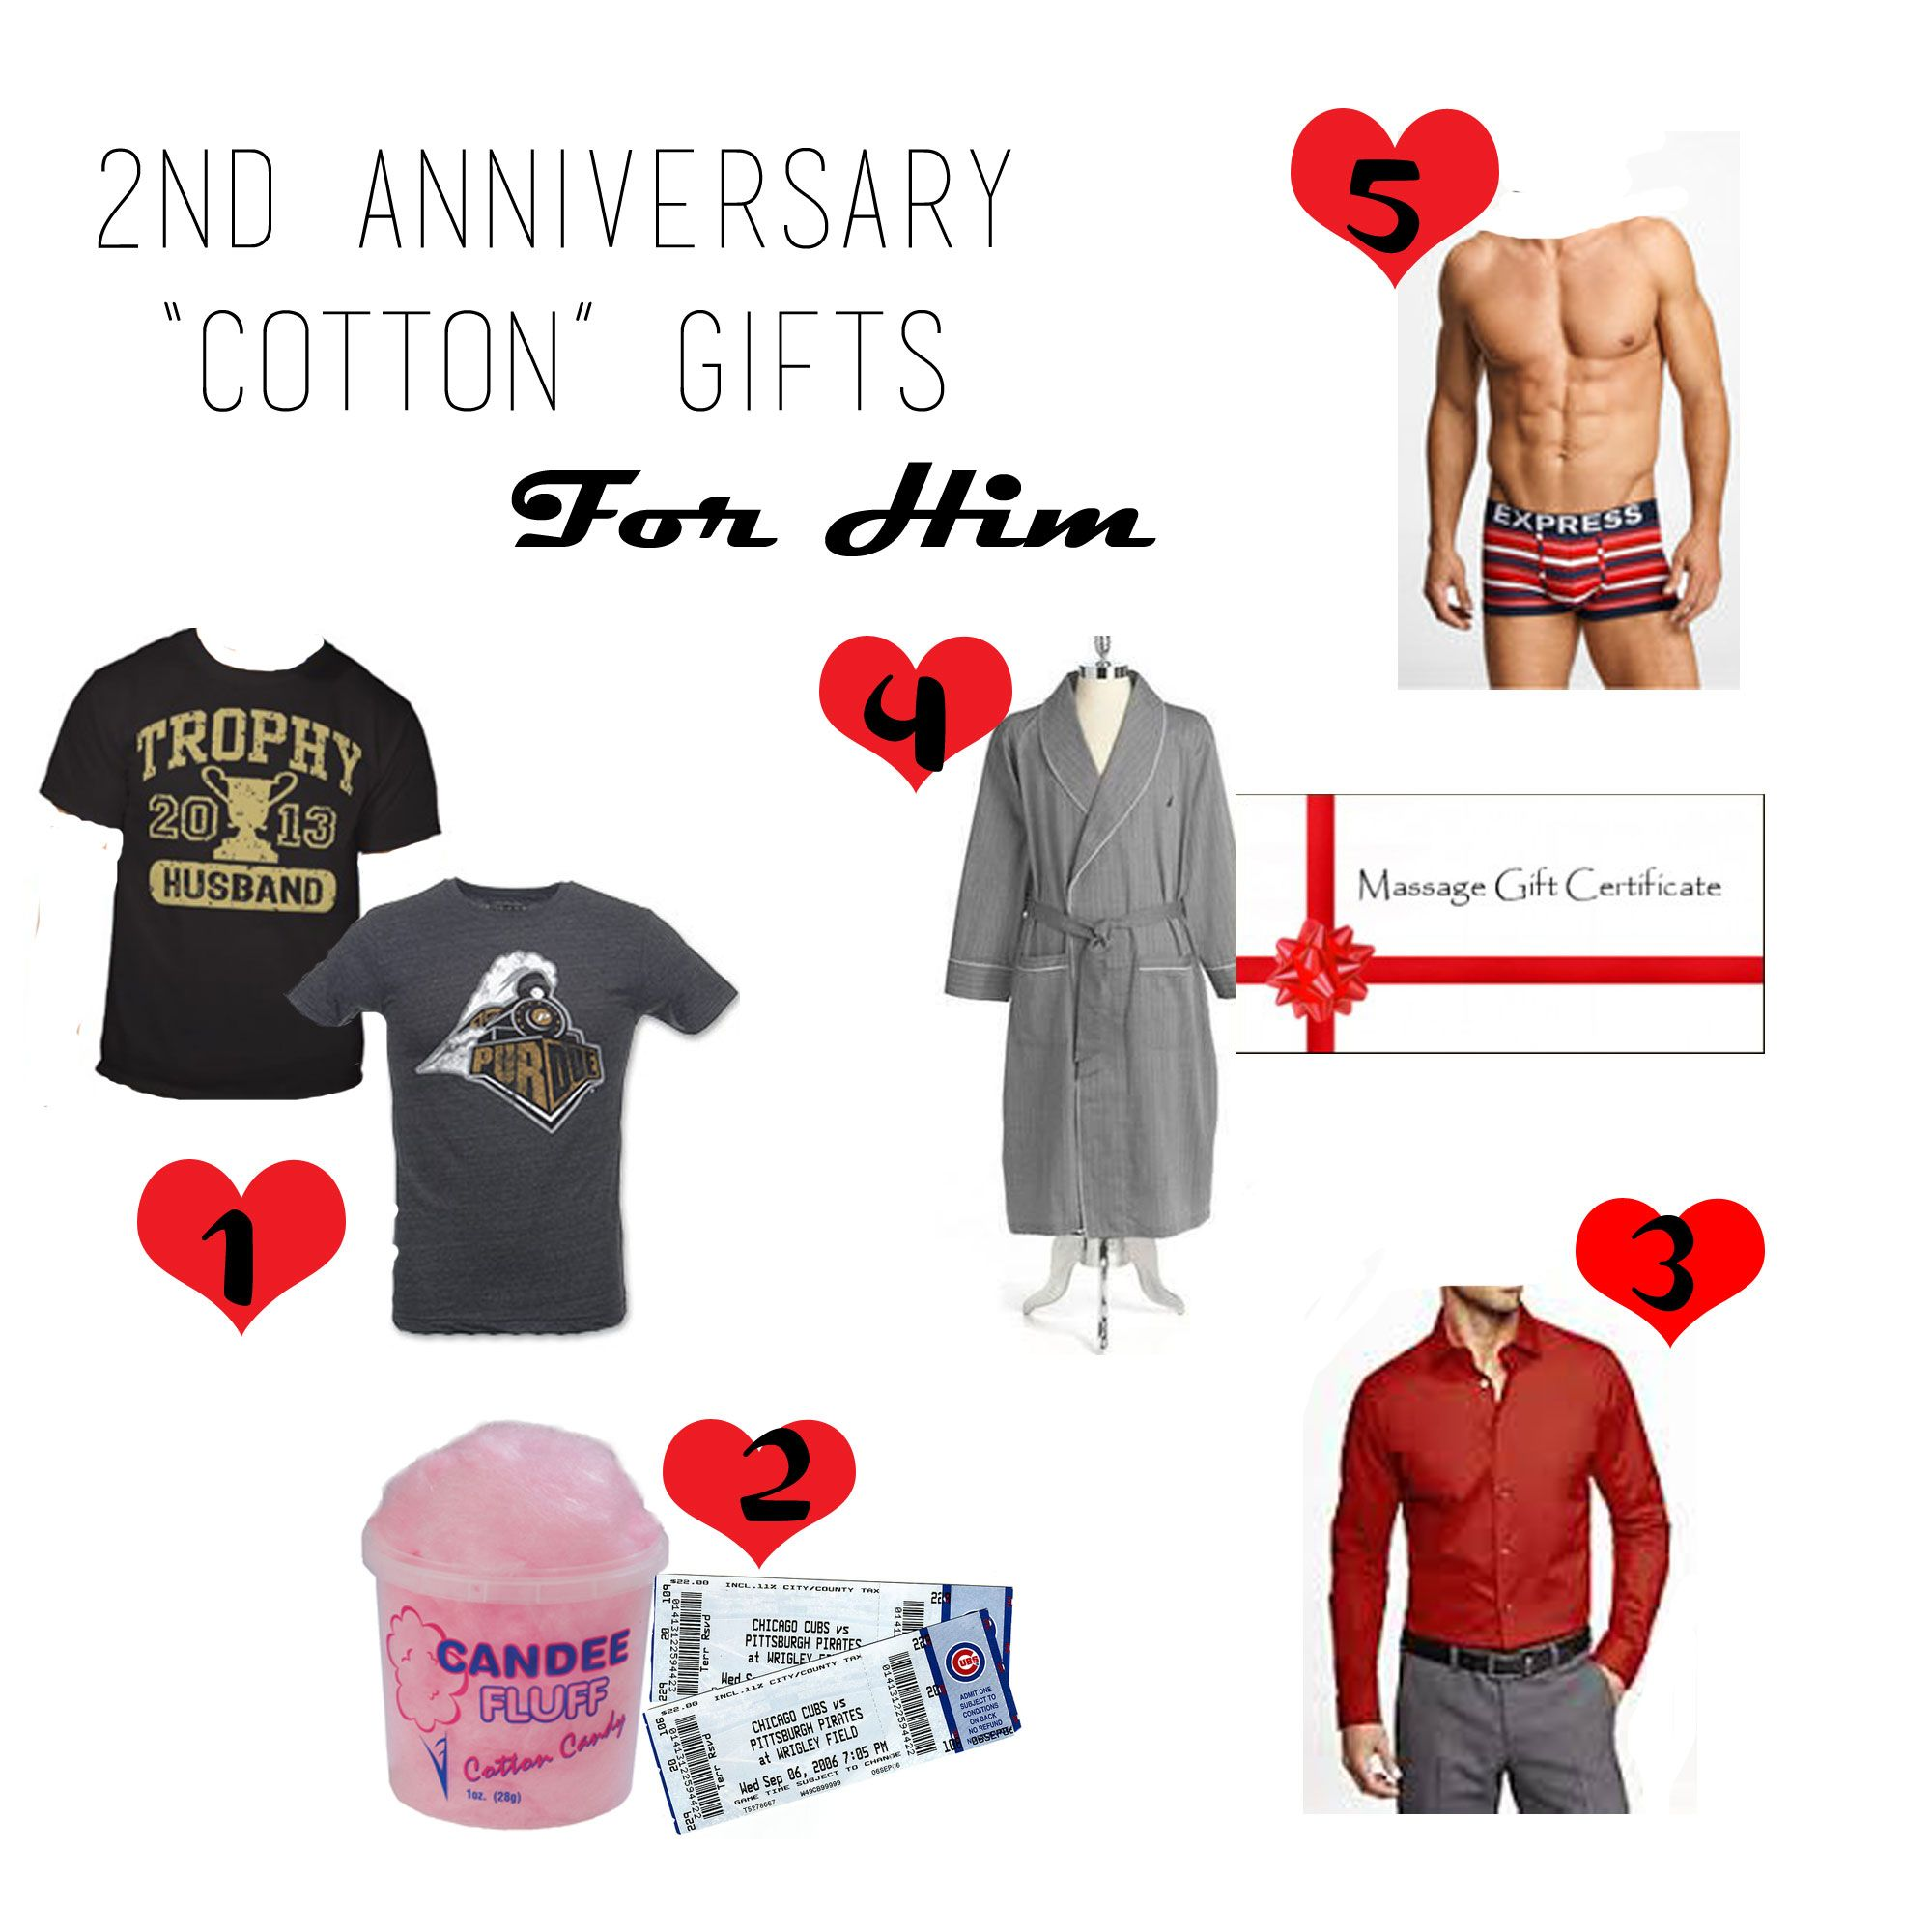 Cotton-AnniversaryGifts_edited-1 | Ideas for mike | Pinterest ...